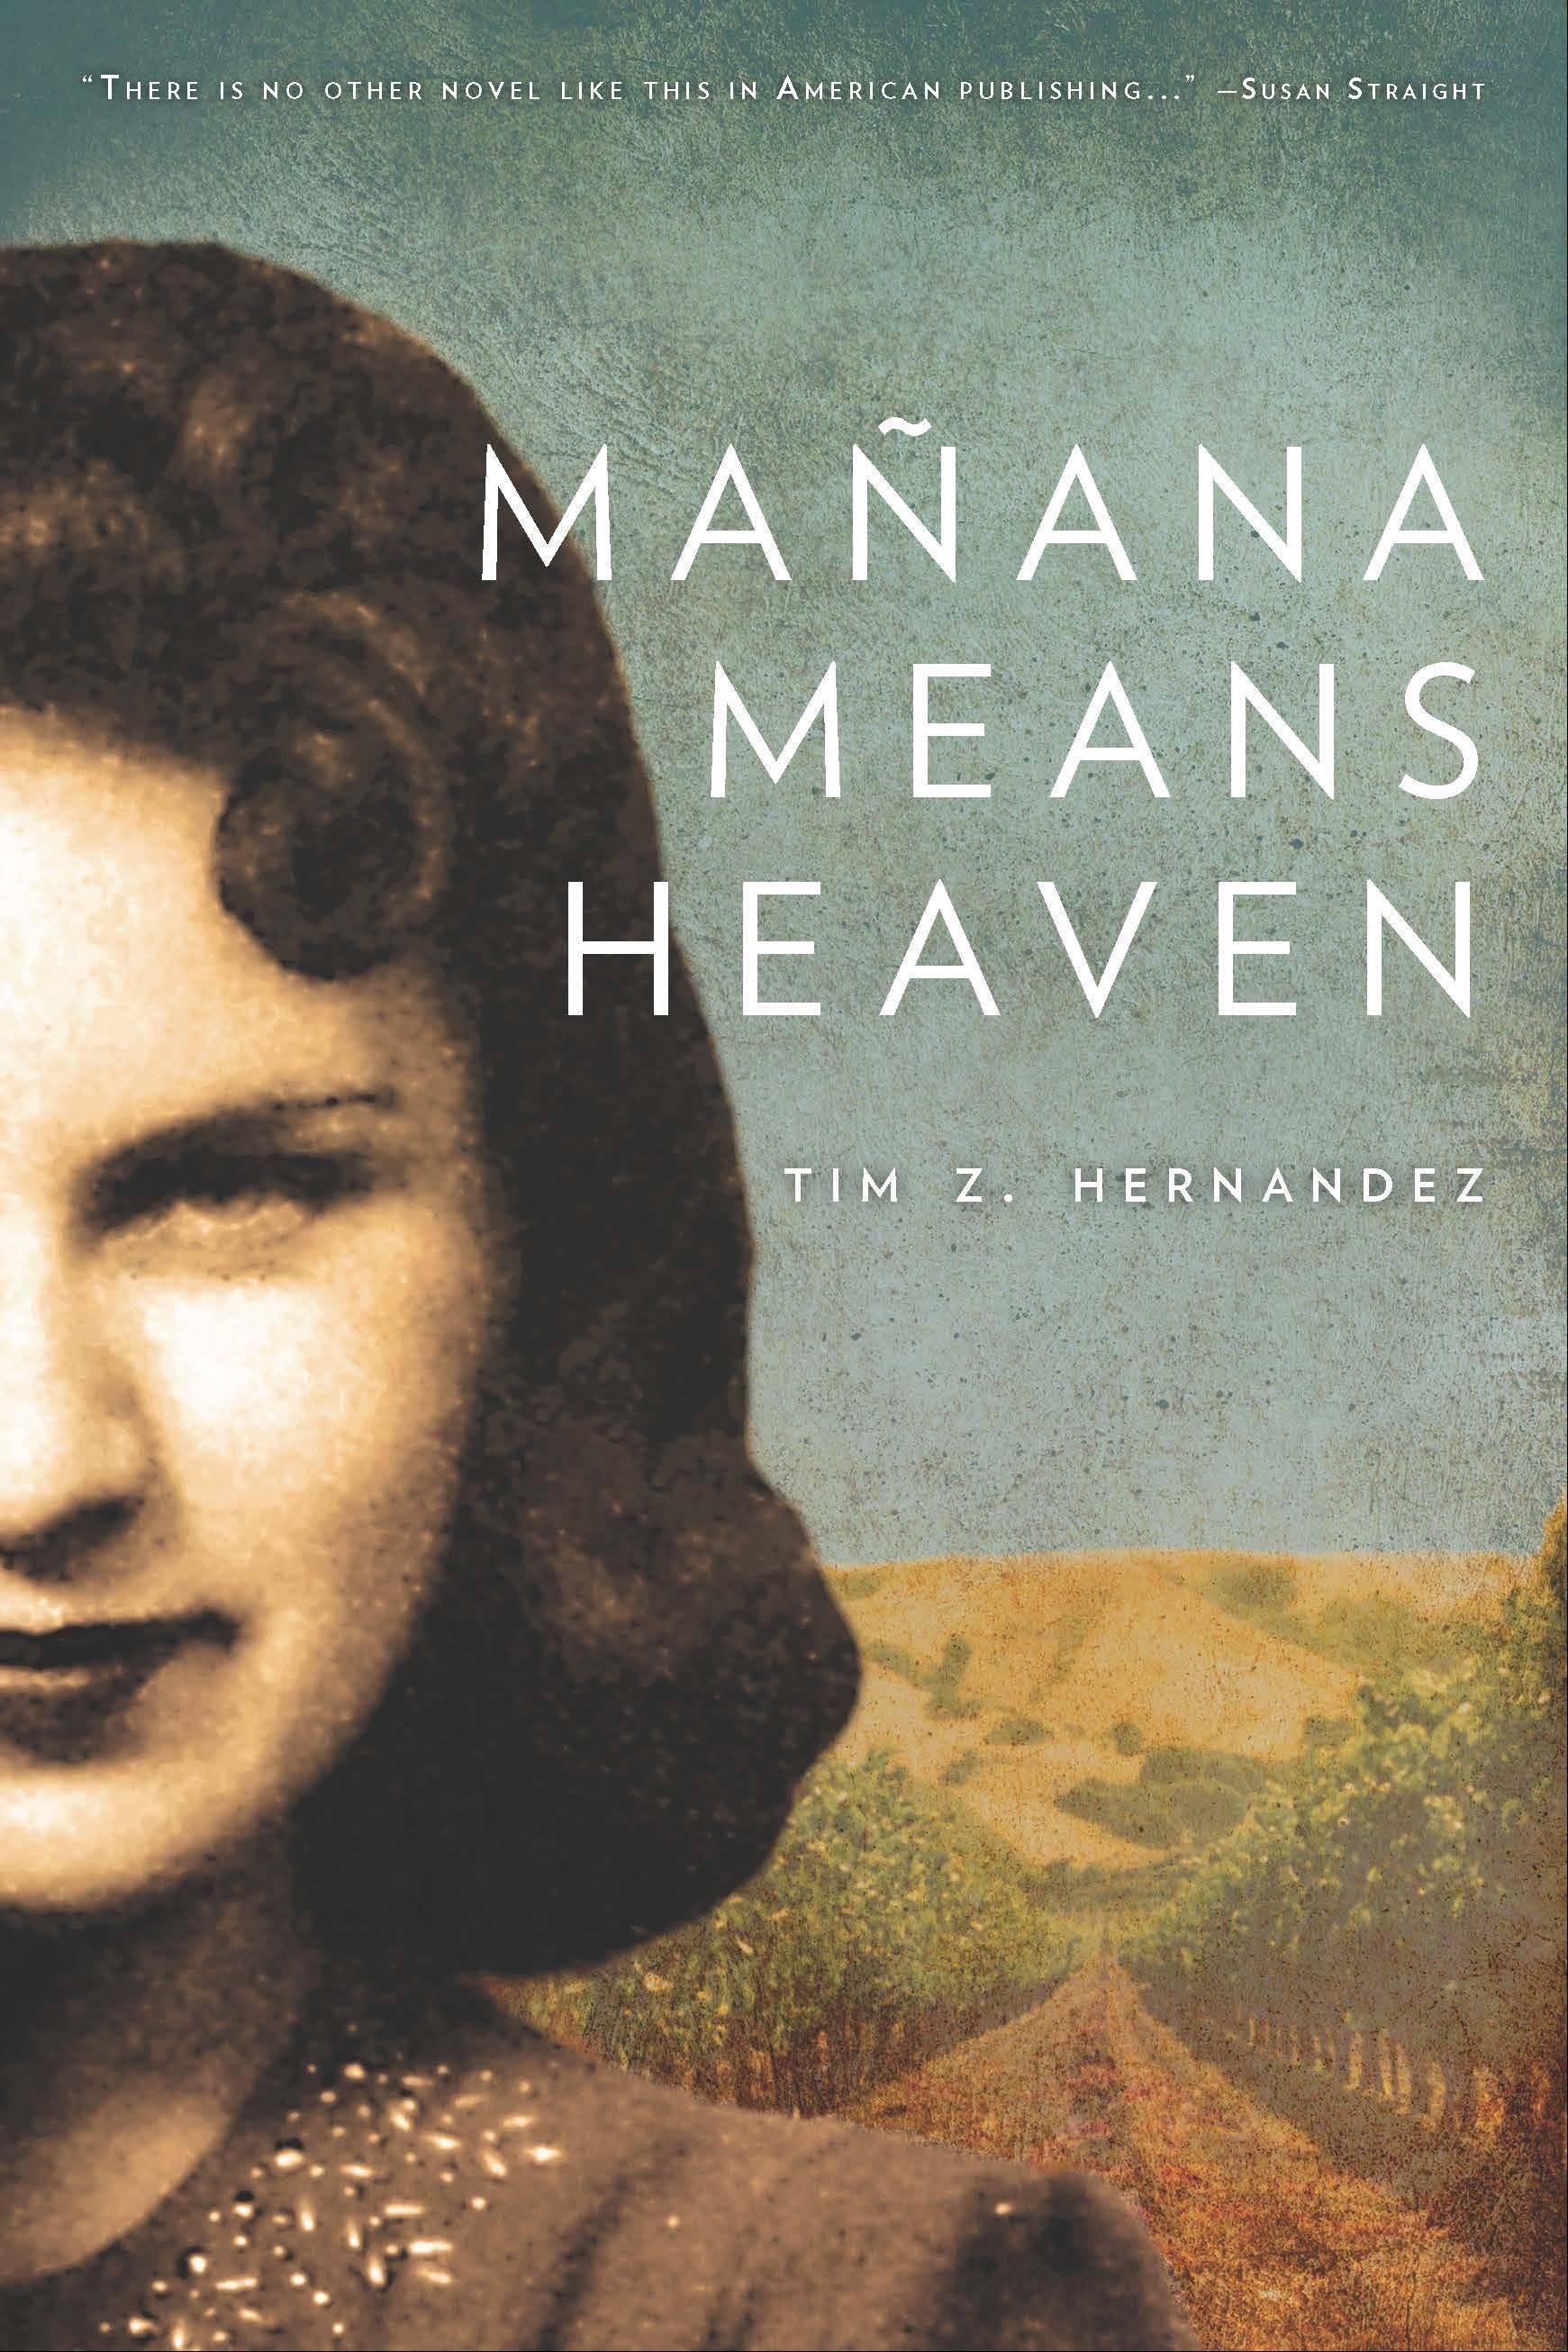 �Manana Means Heaven� by Tim Z. Hernandez